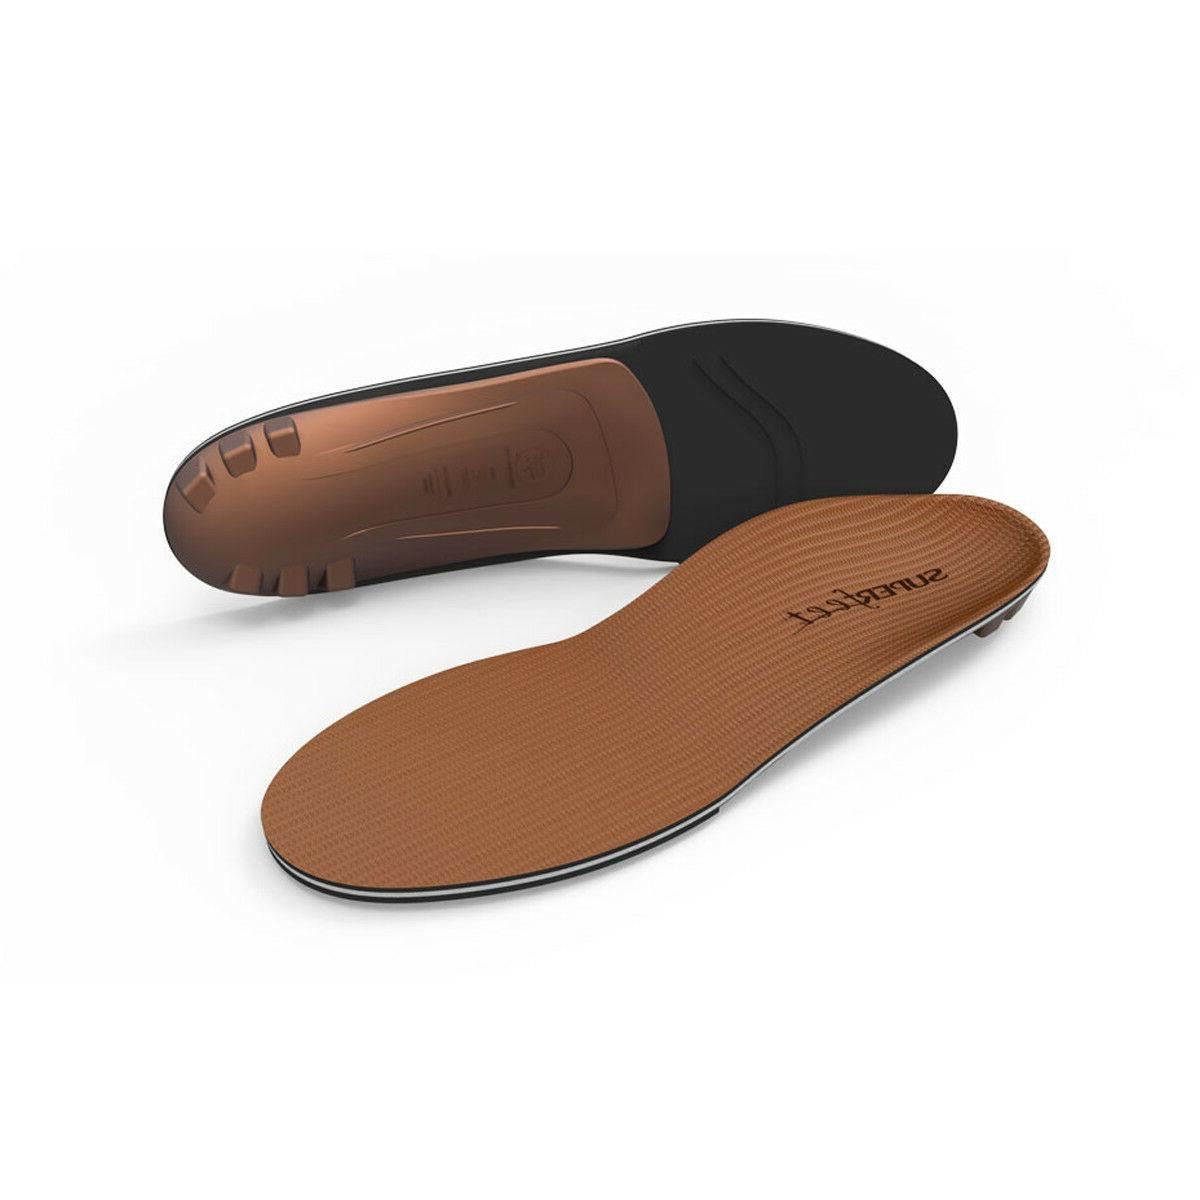 new copper arch support shoe inserts insoles